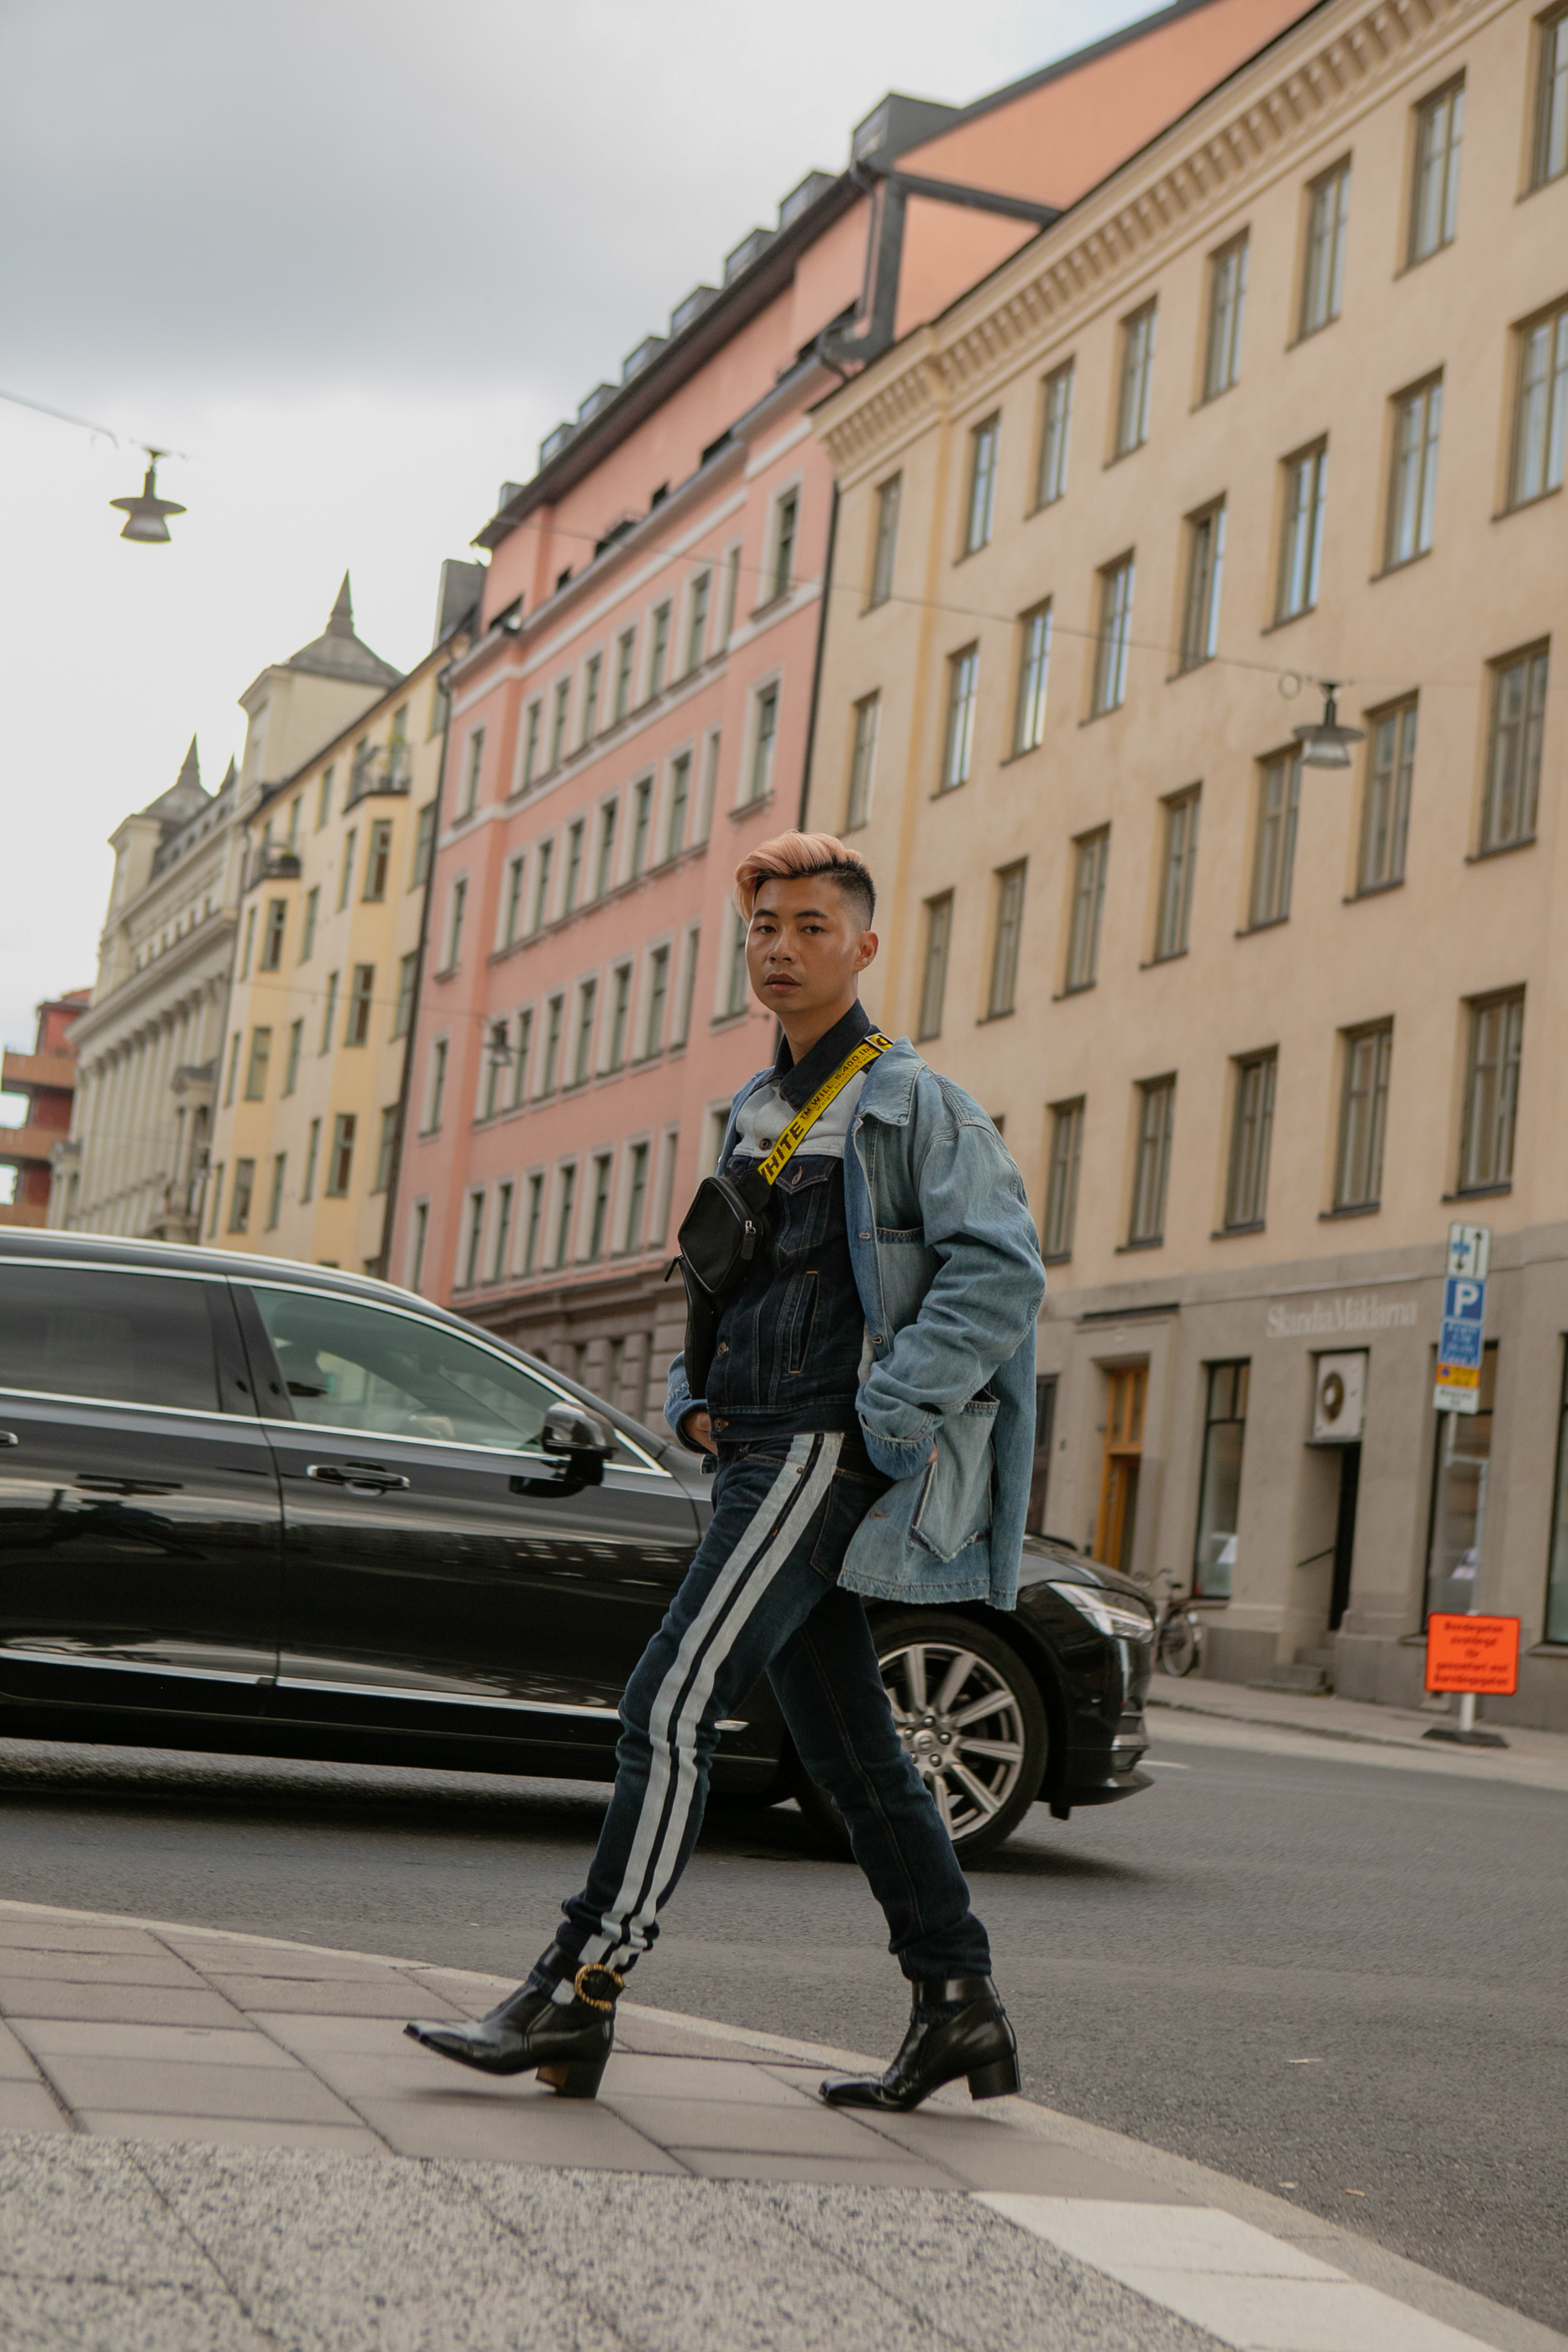 MYBELONGING-TOMMYLEI-TOP-MENSWEAR-BLOGGER-AGENDER-STREETSTYLE-STOCKHOLM-FASHION-WEEK-OUTFIT-PHOTOGRAPHY26.jpg